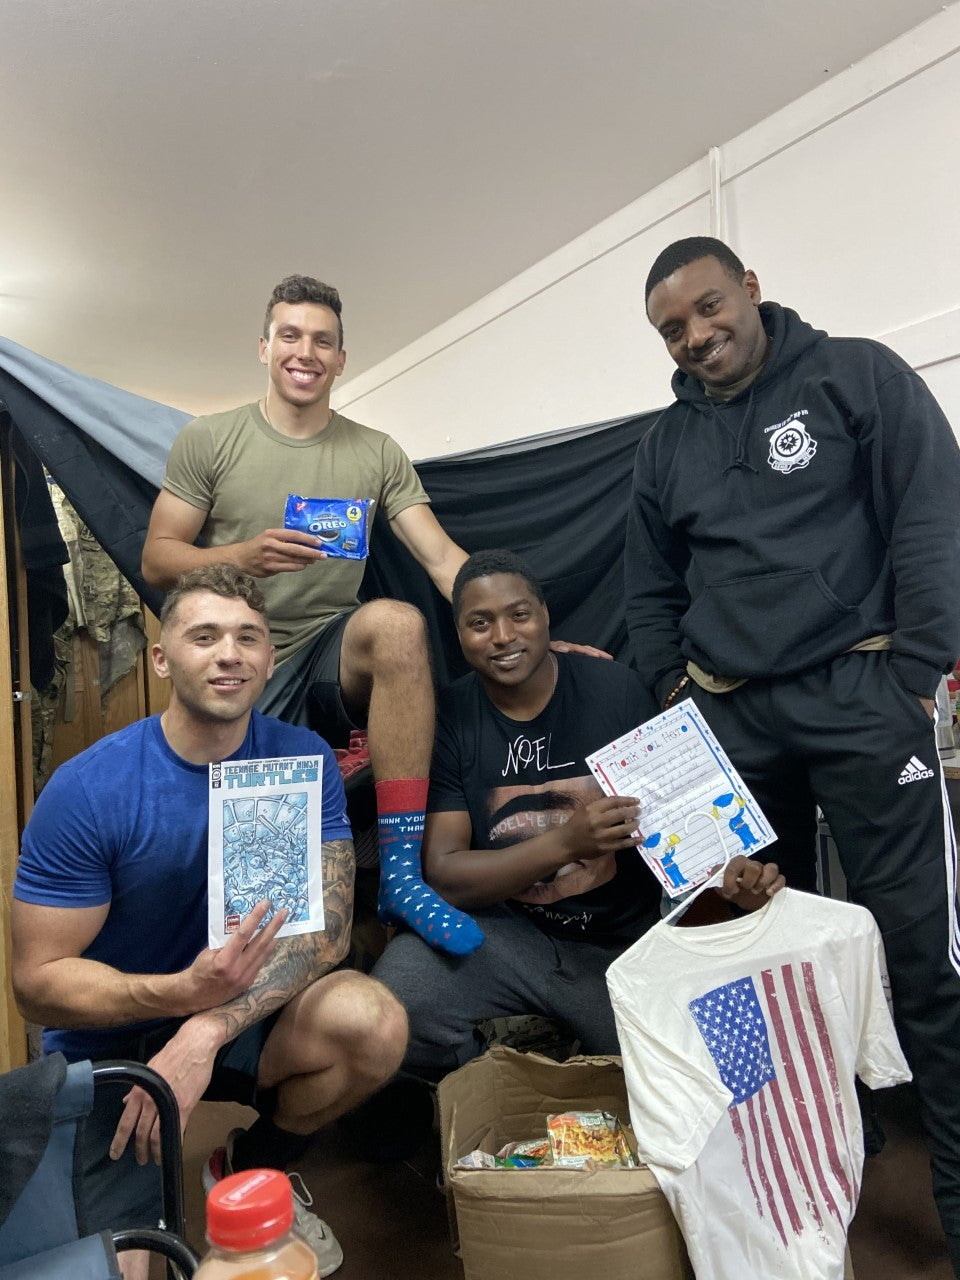 Four soldiers posed with a stack of comics and snacks